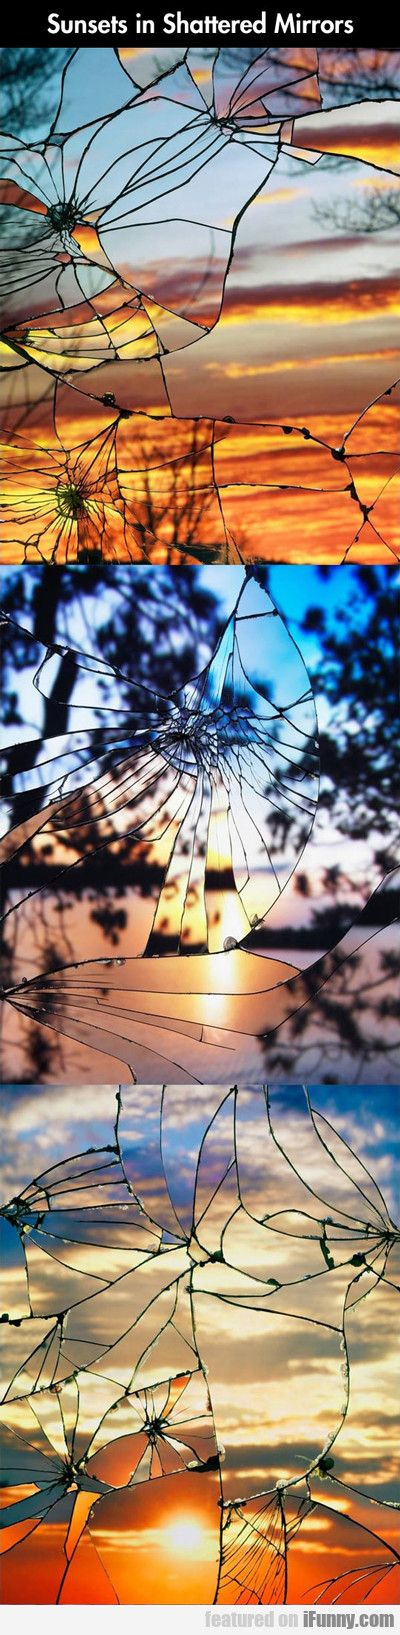 Sunsets In Shattered Mirrors...